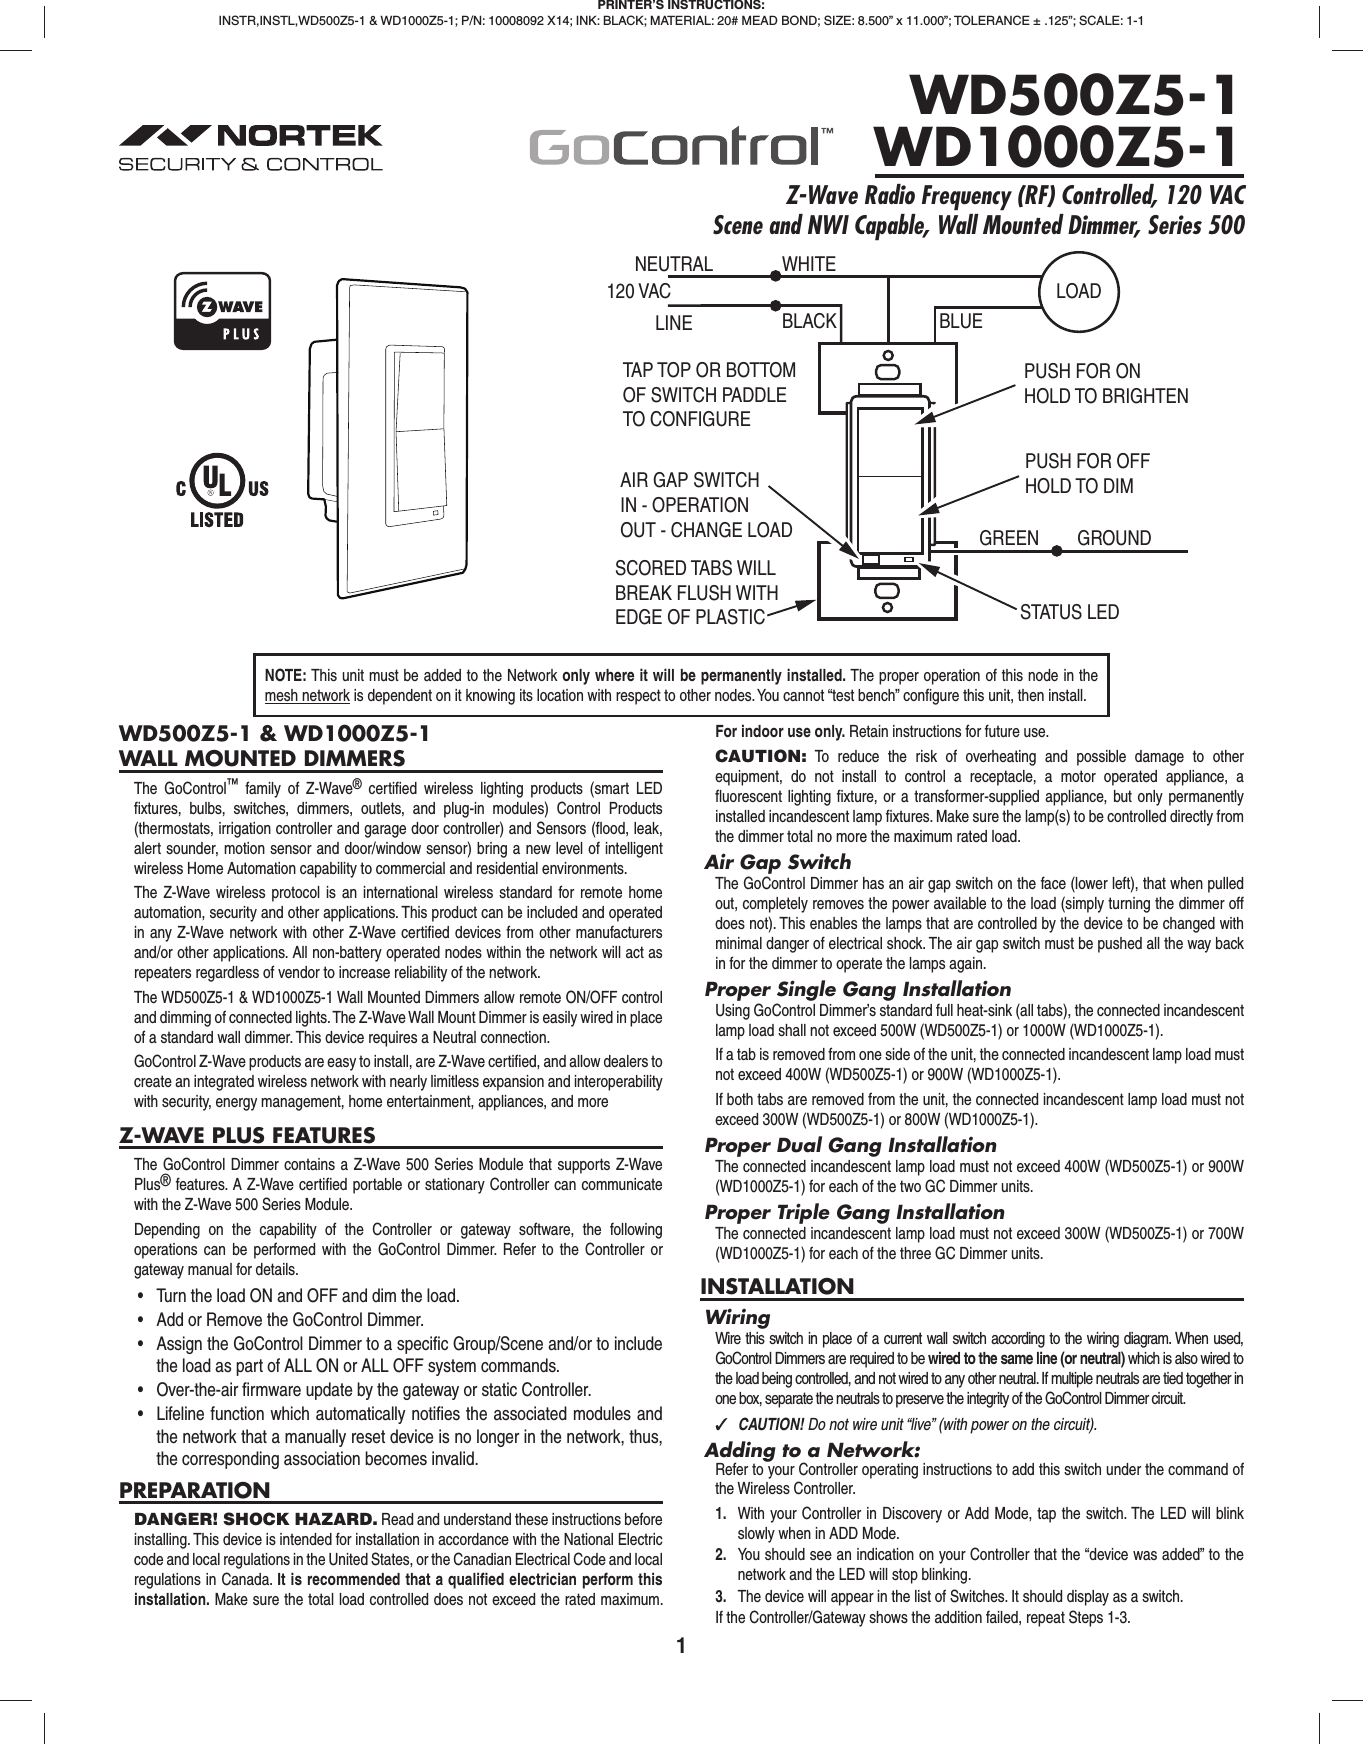 Emergency Lighting With Dimming Control Manual Guide